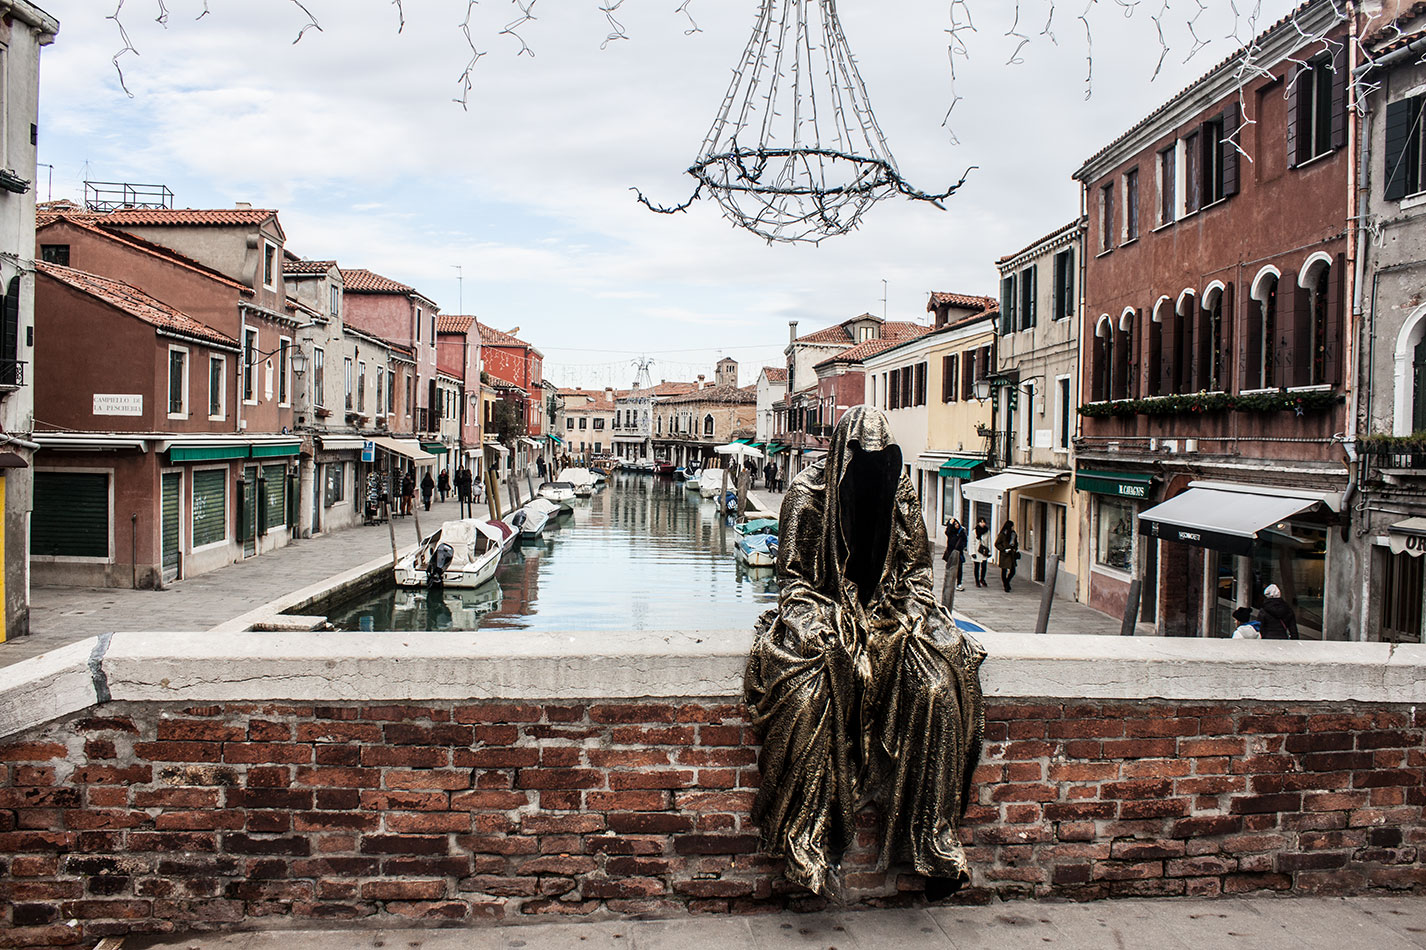 Italia-Venice-Murano-Berengo-glas-studio-glasstress-guardians-of-time-by-Manfred-Kili-Kielnhofer-contemporary-art-design-show-7162